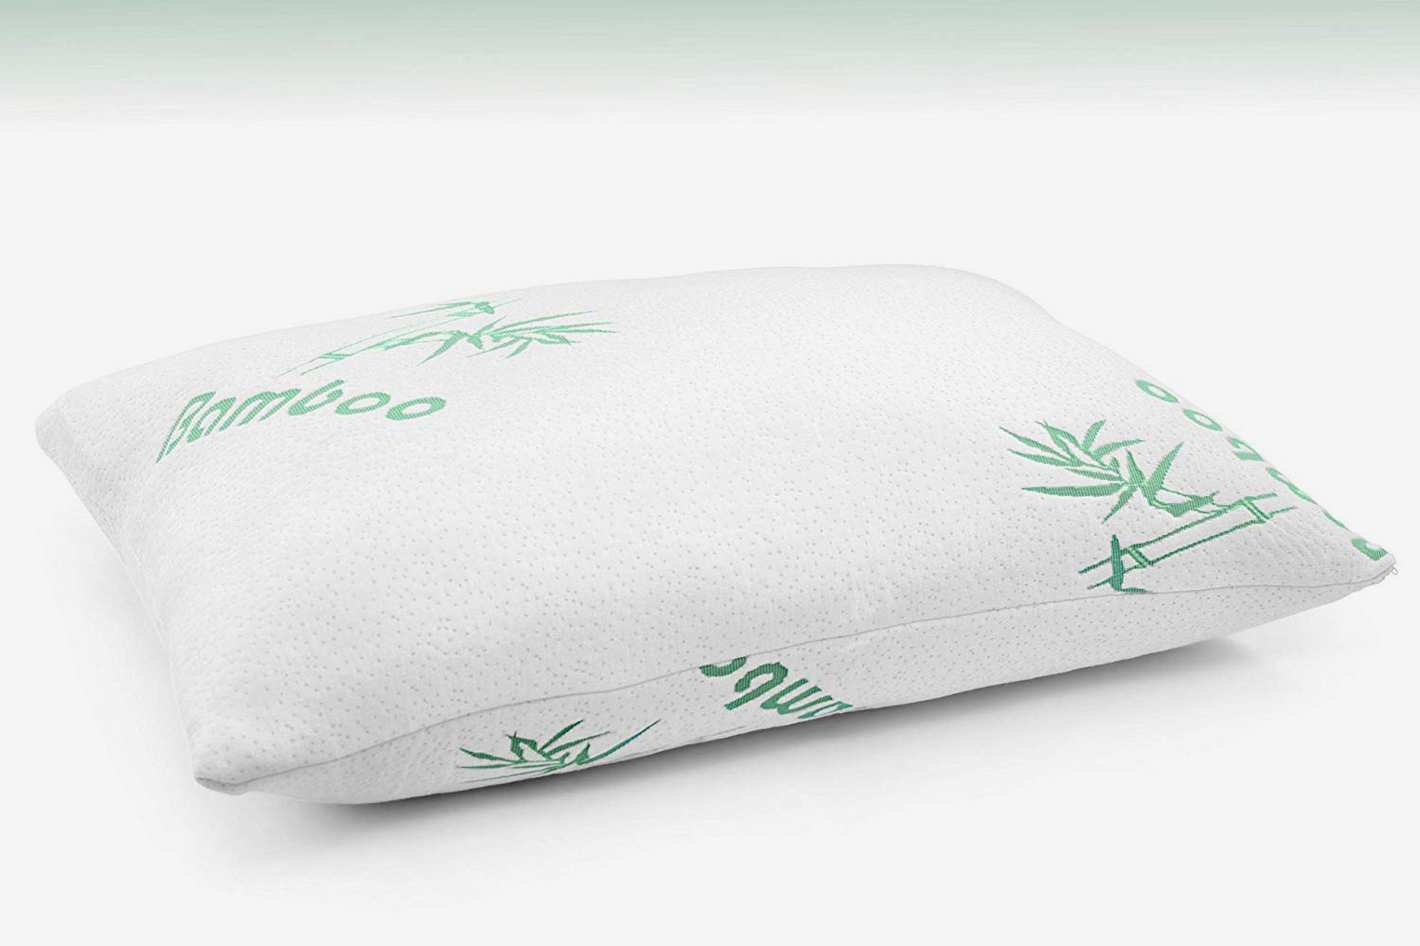 Plixio Cooling Memory Foam Bed Pillows - 2 Pack